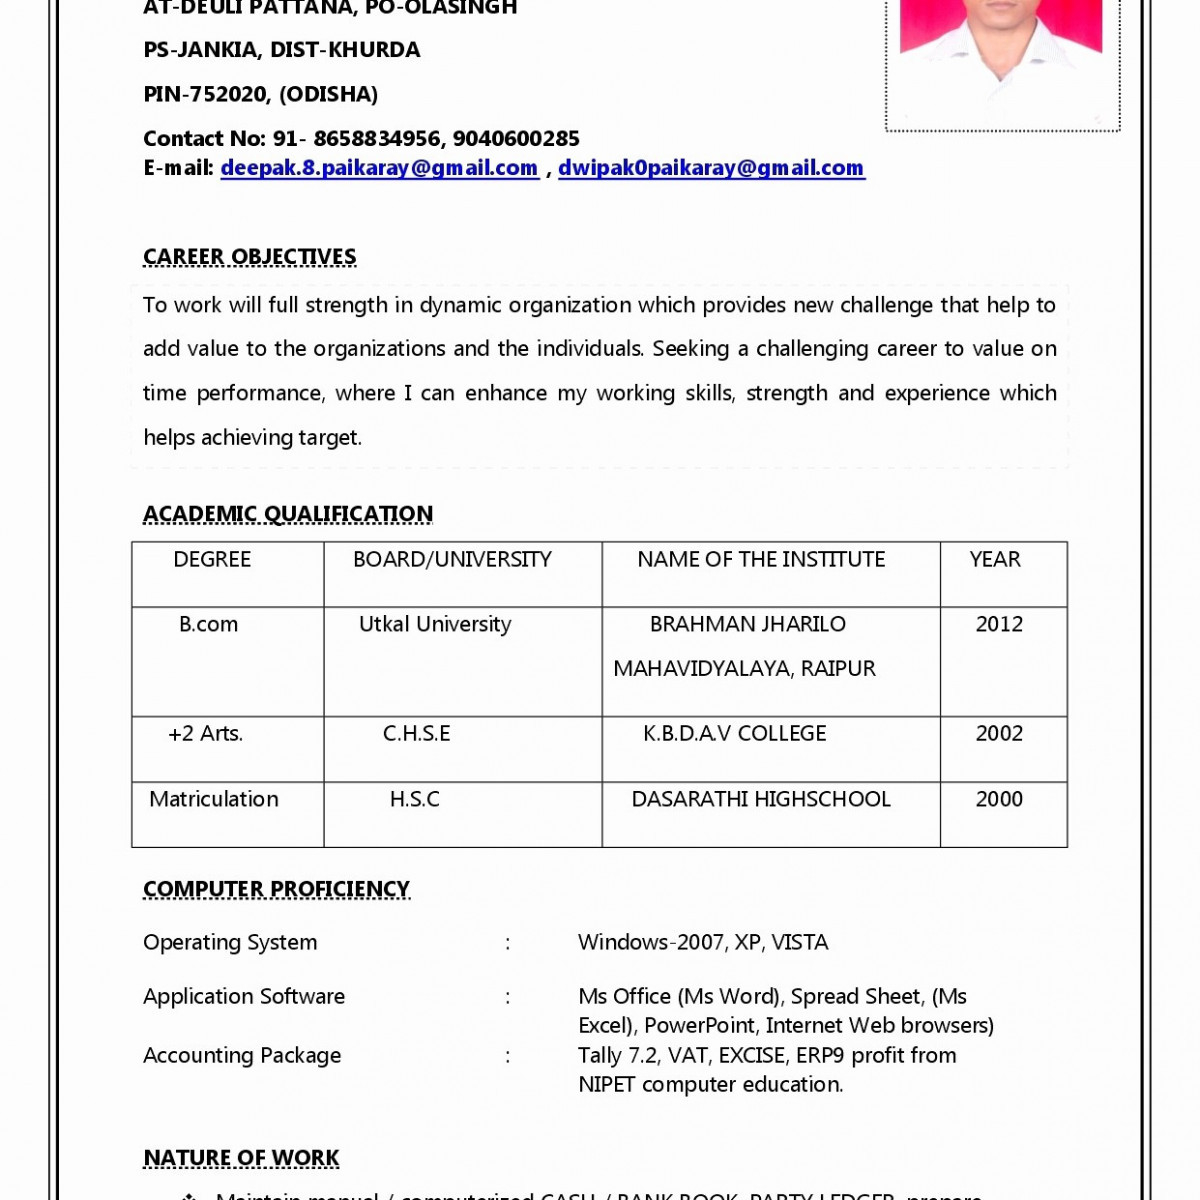 forms for resumes example-Free Resume forms Inspirational Free Resume Examples Fresh Business from Forms For Resumes source aurelianmg 18-a